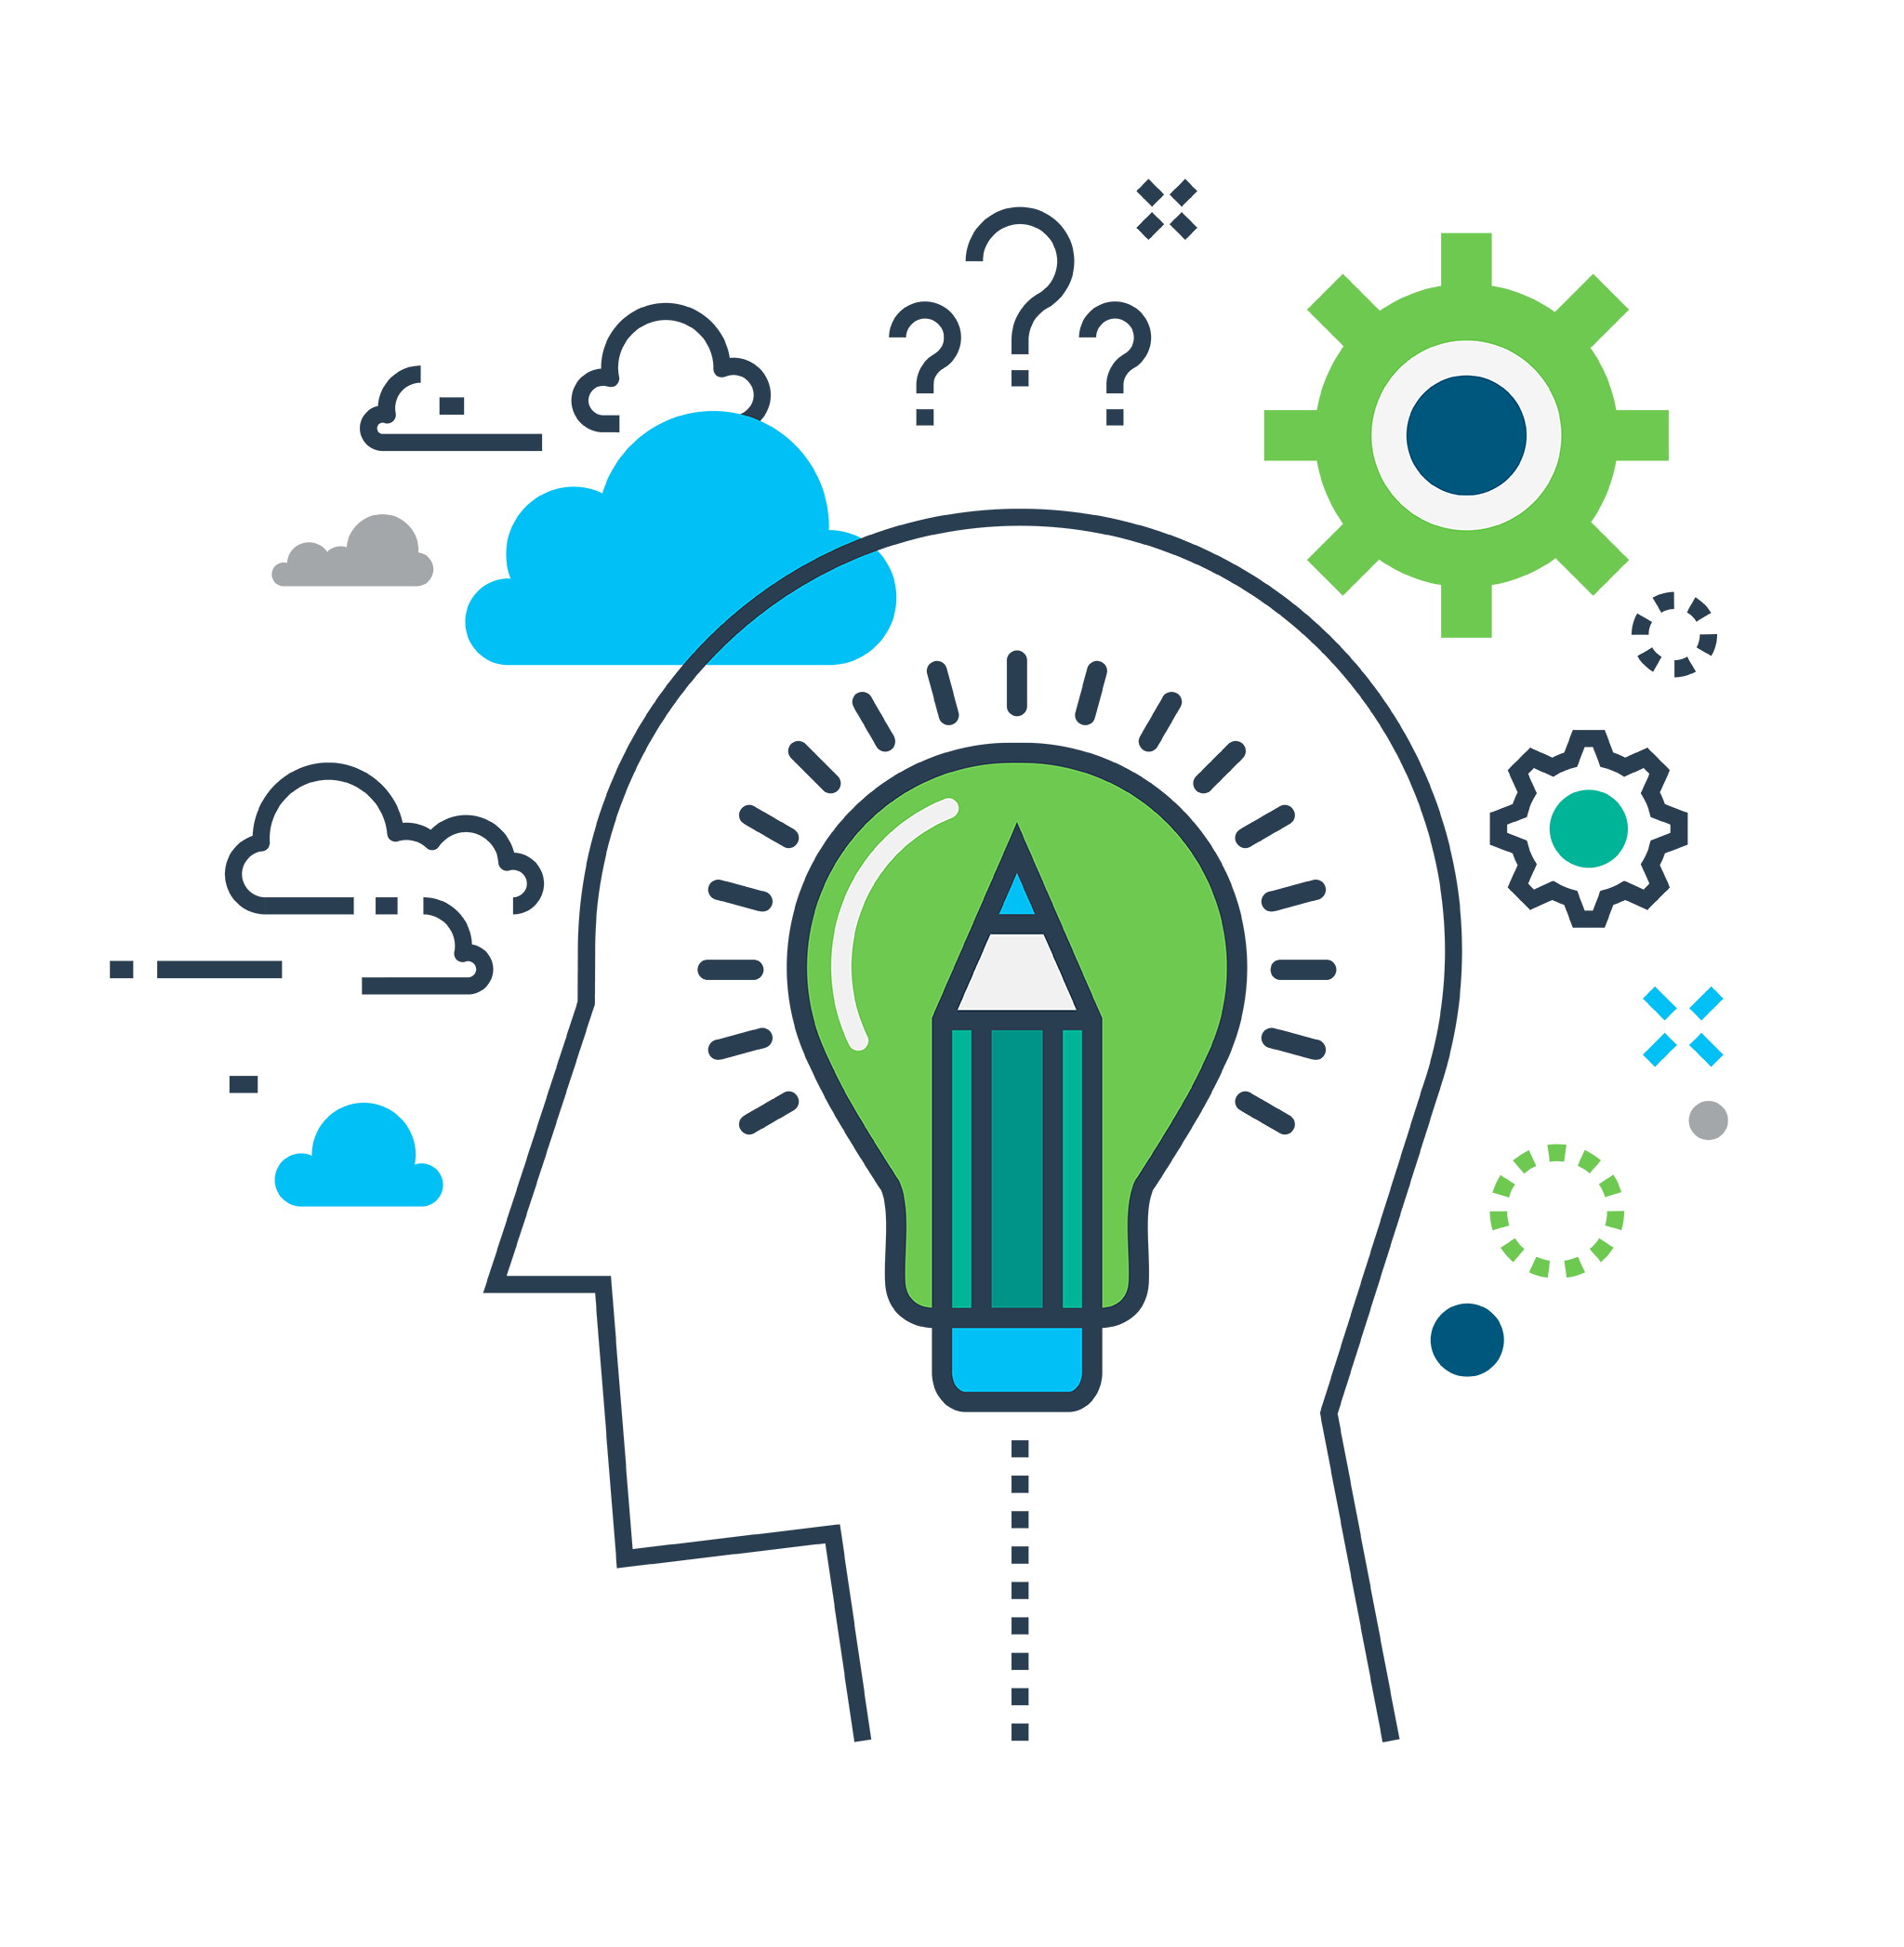 Illustration of a head with a pencil and lightbulb in the middle with clouds and question marks surrounding it